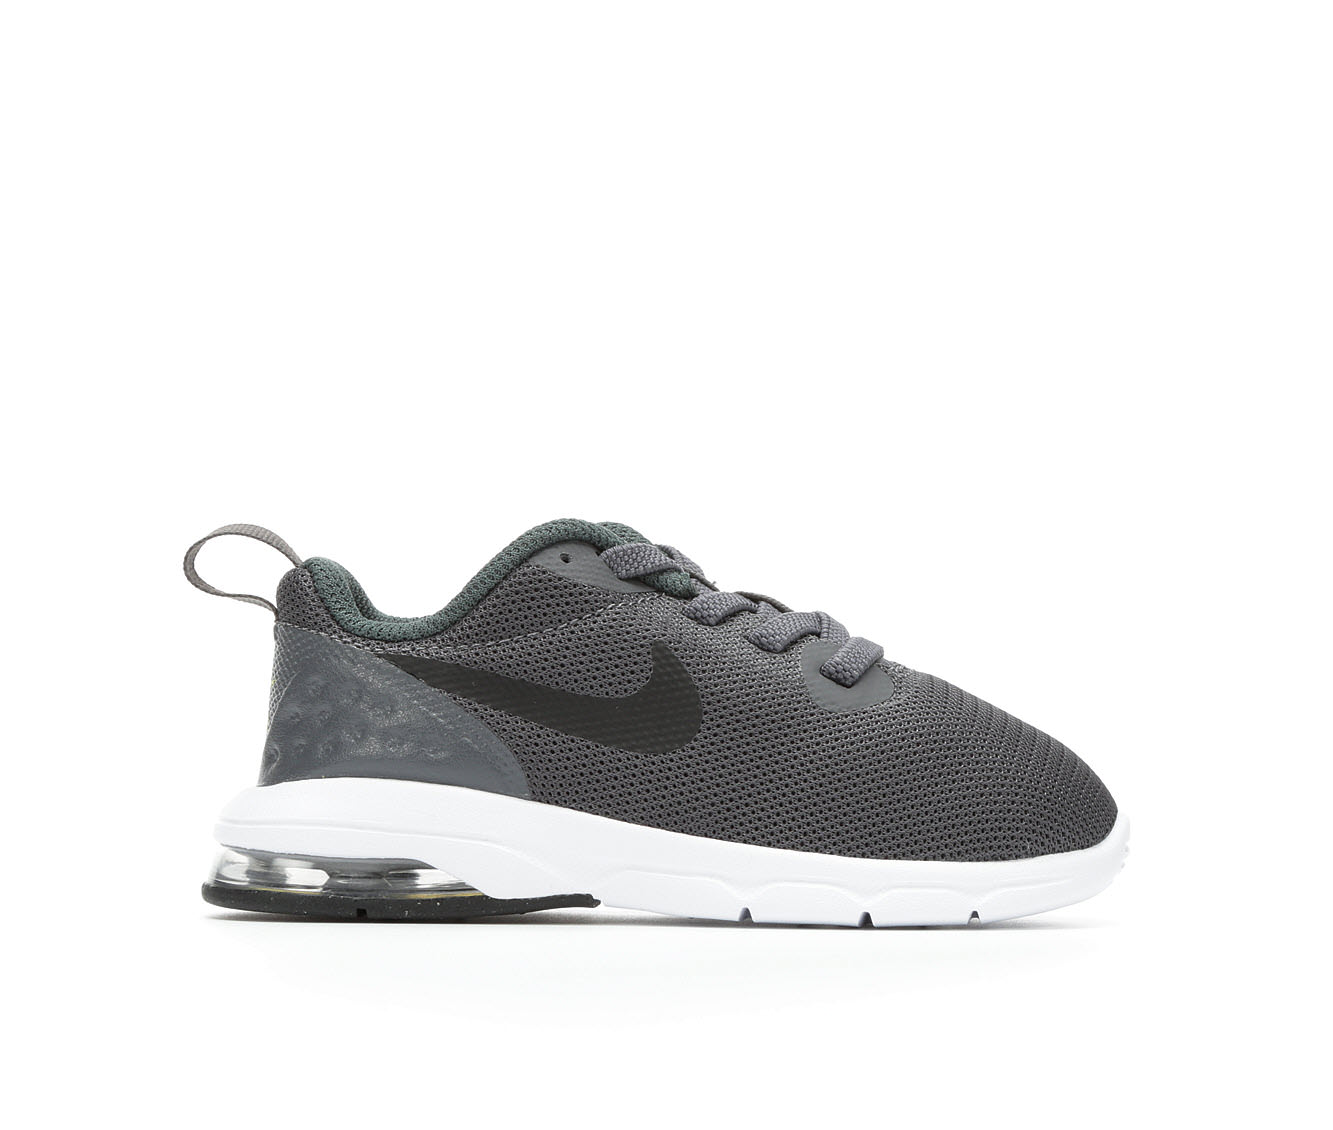 Boys' Nike Infant Air Max Motion Low Sneakers (Grey)